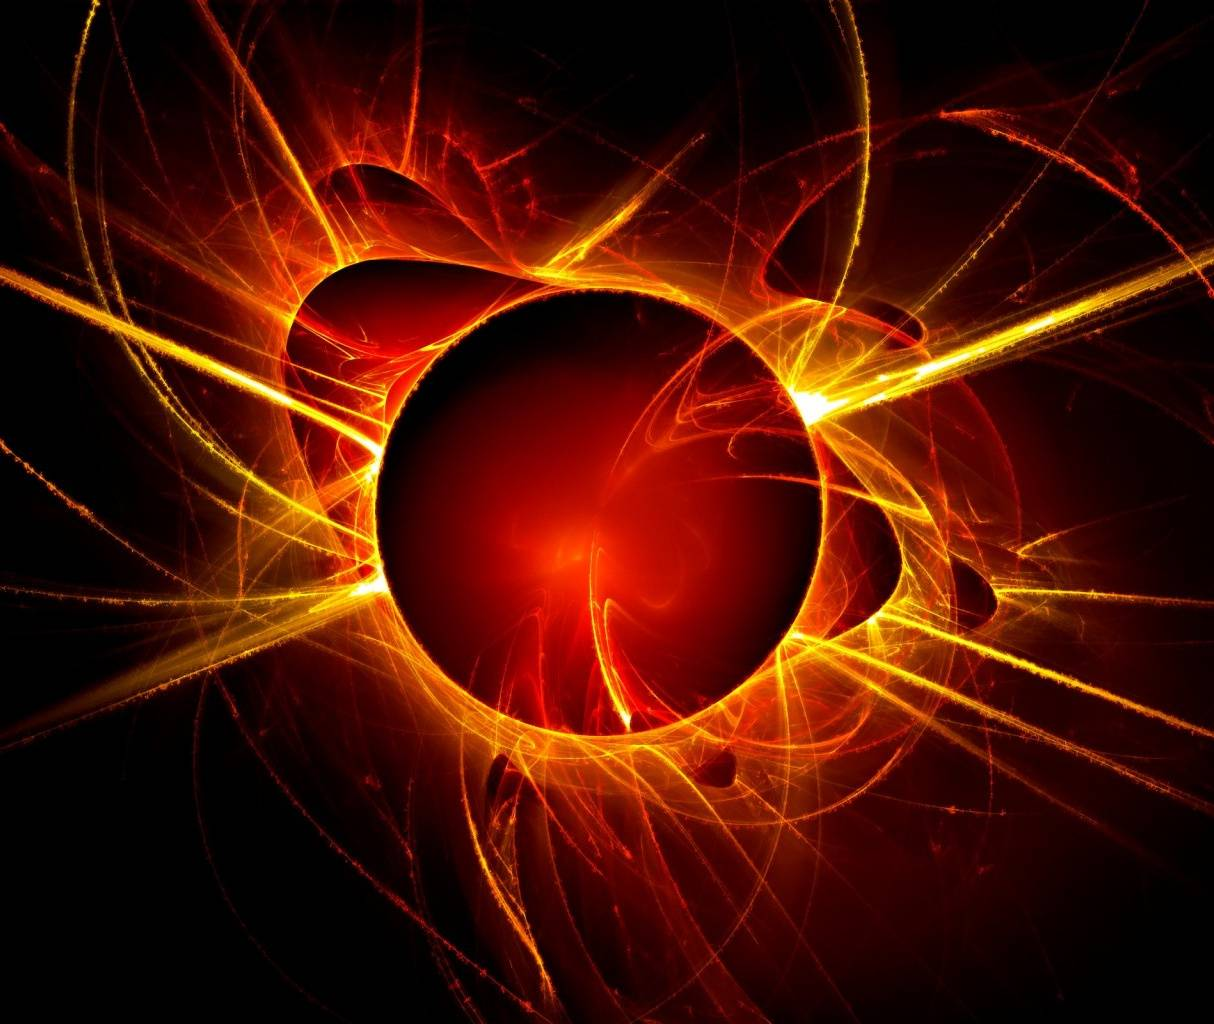 Red Fire Abstract Wallpaper By Khaled1207